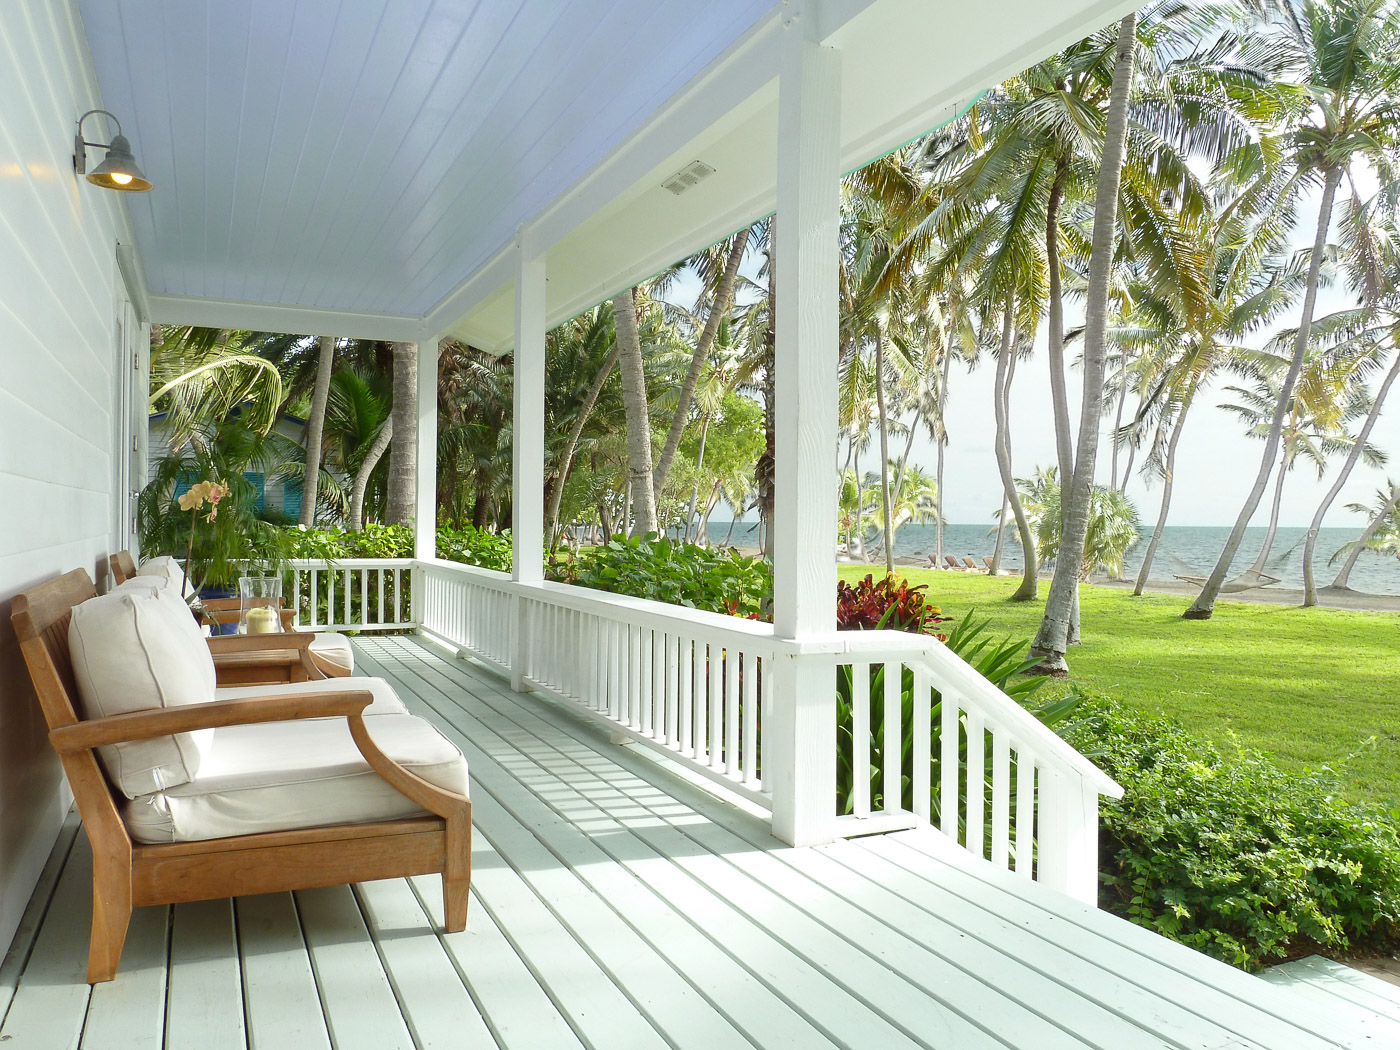 Islamorada Hotels One Bedroom Villas The Moorings